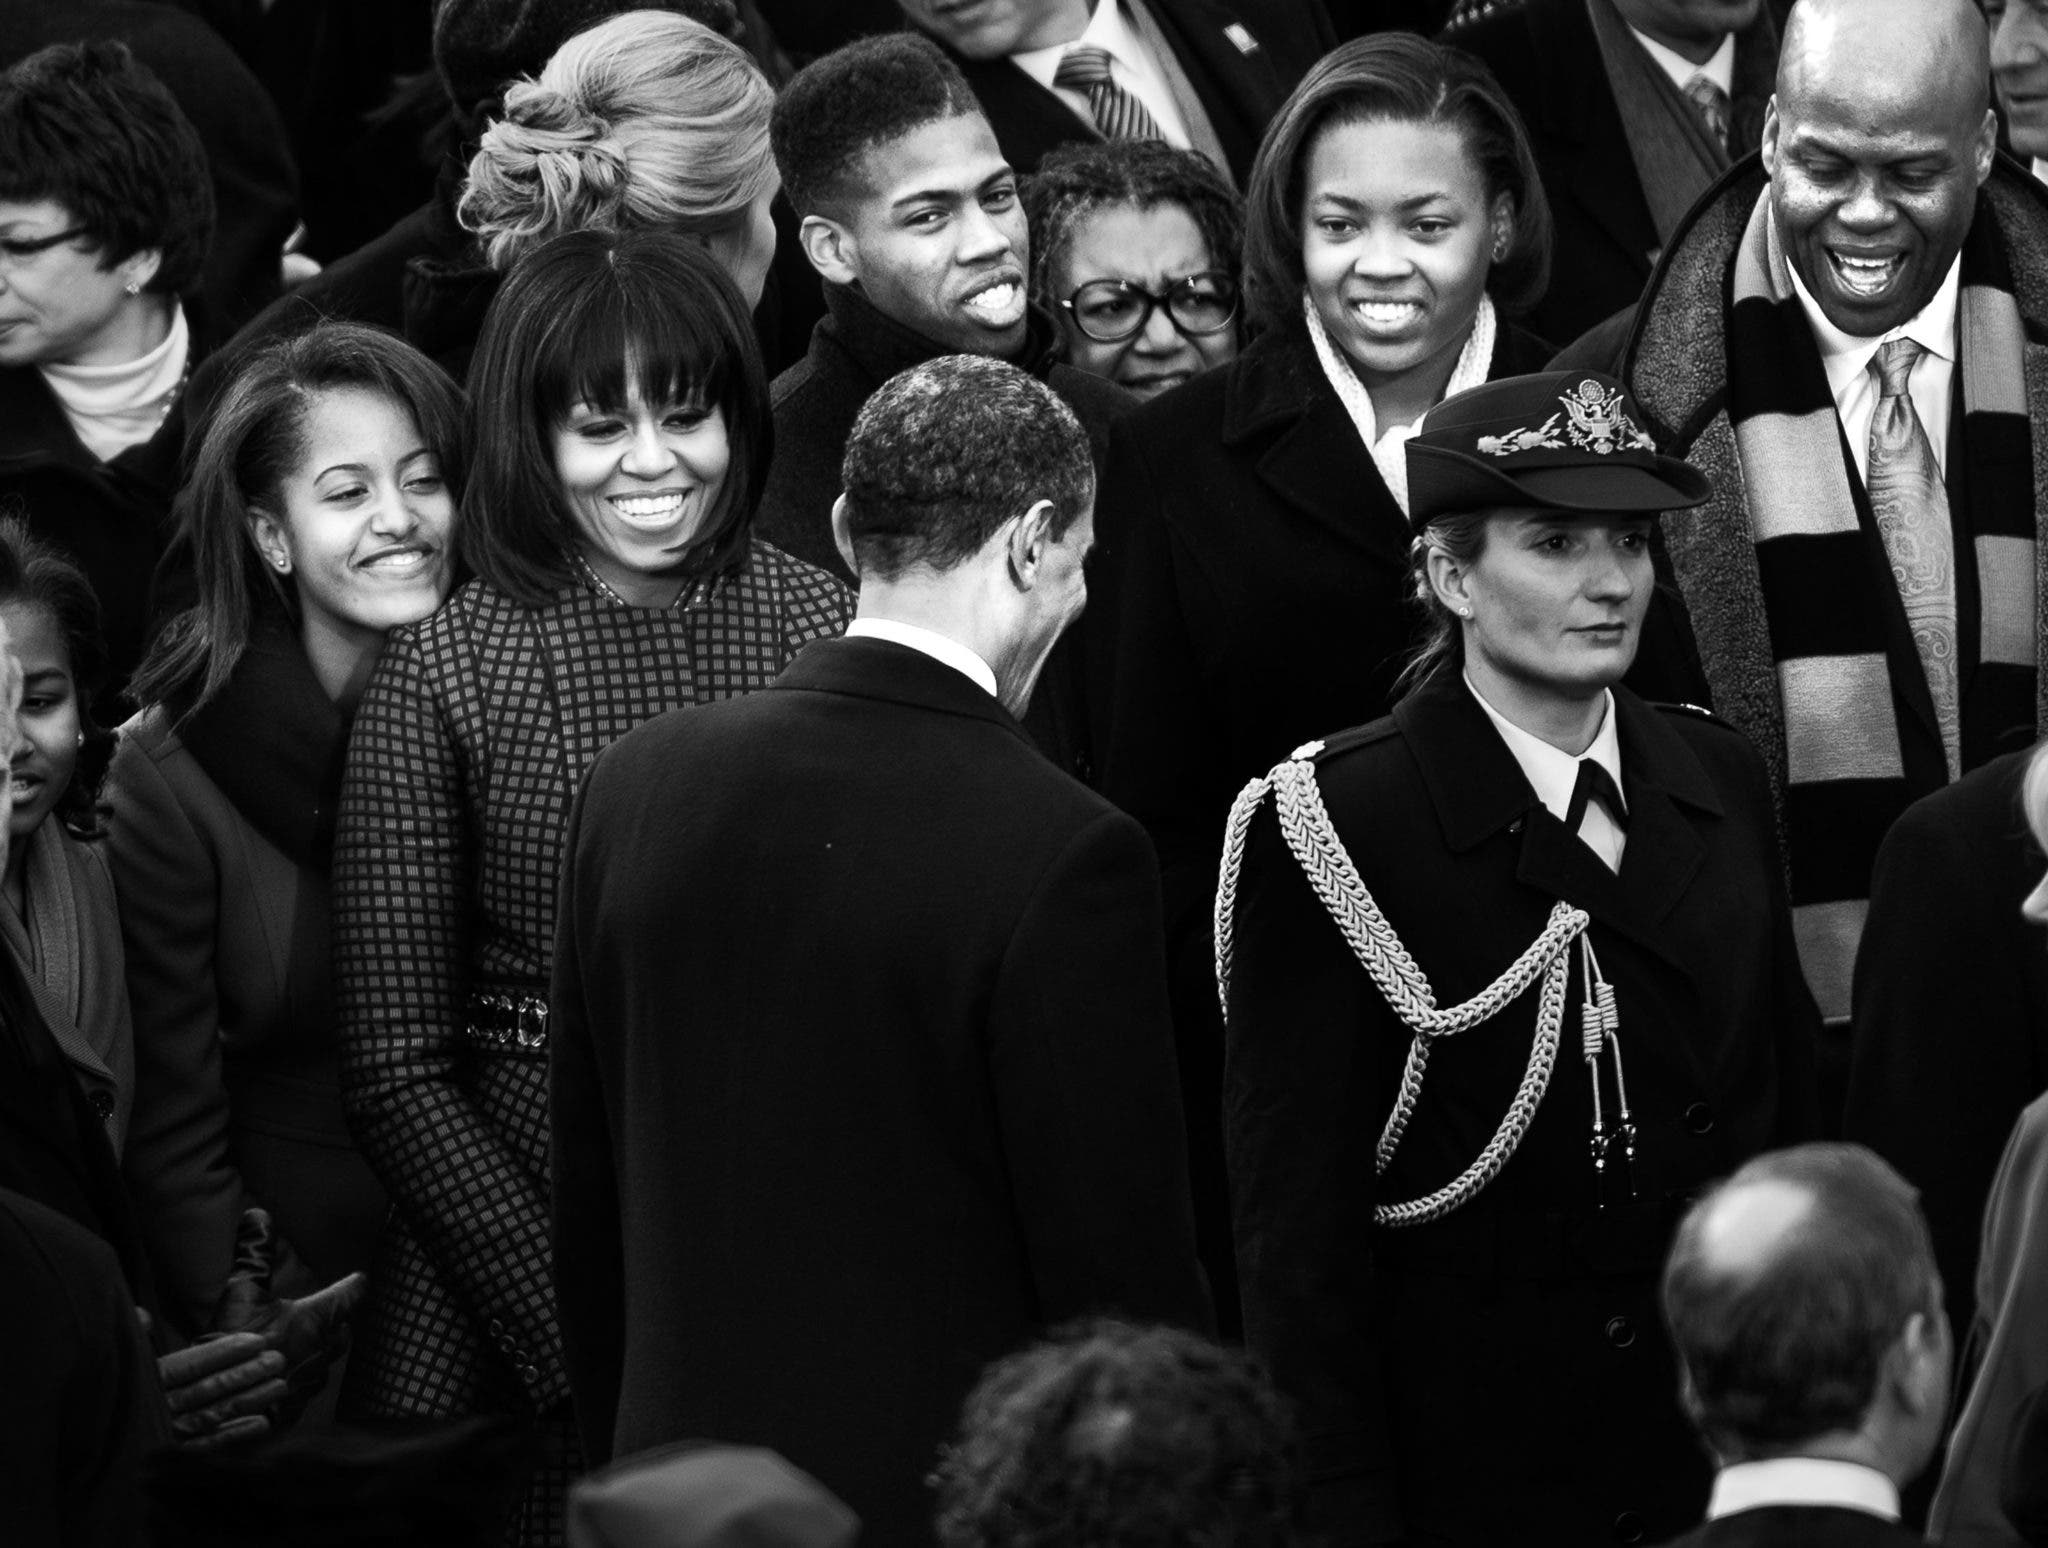 Format Follows AP Photojournalist Andrew Harnik Through the White House